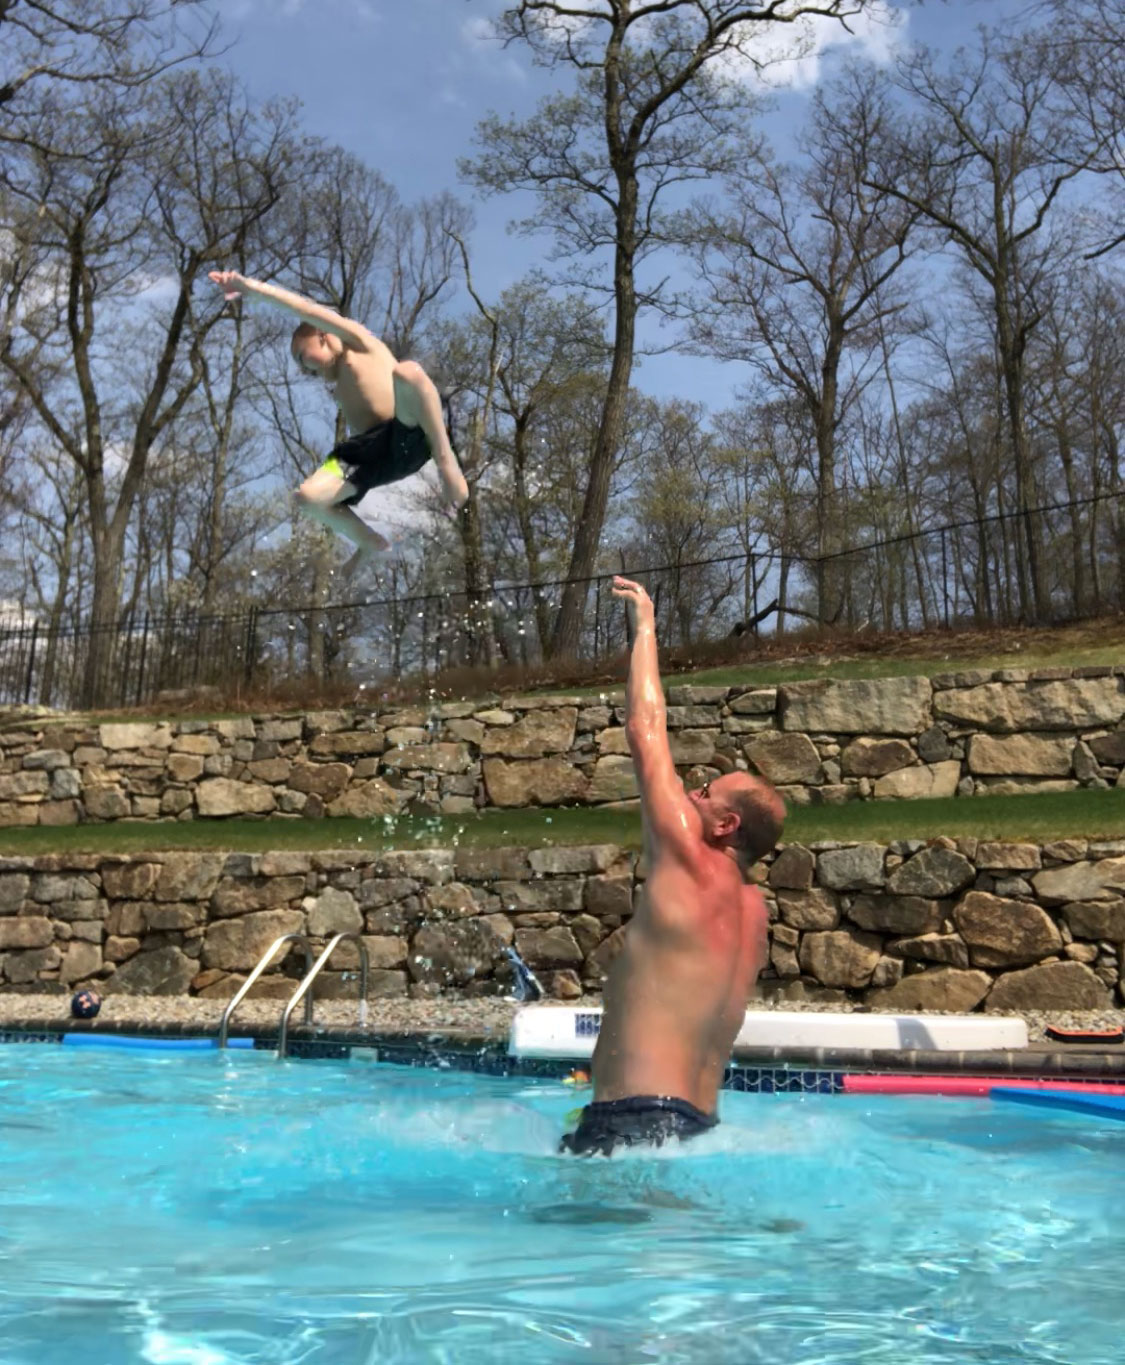 Man throws his son in the pool